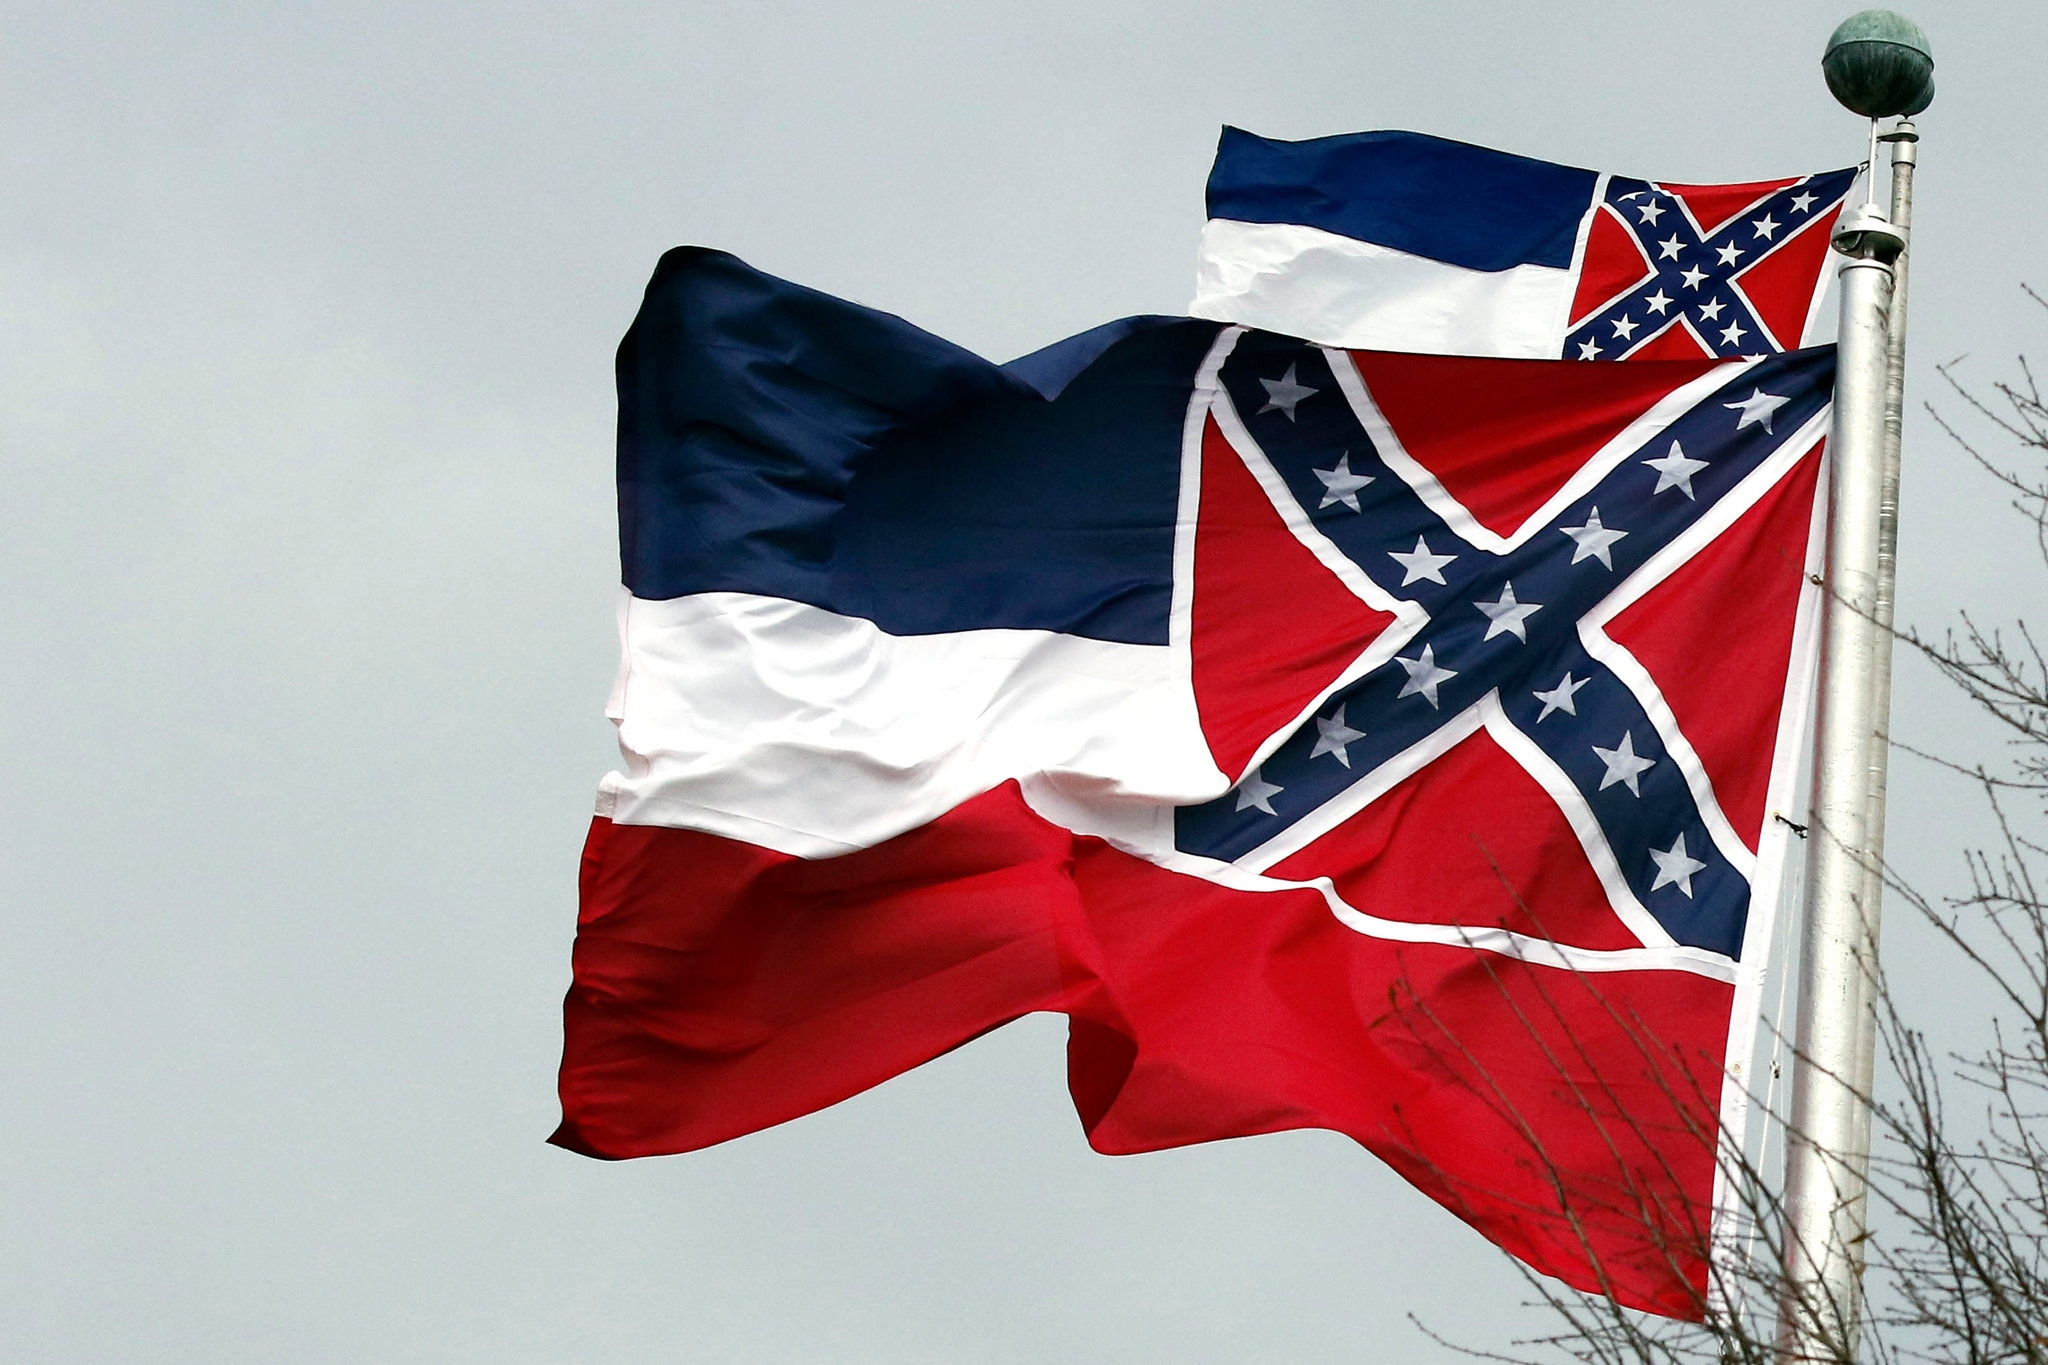 As Symbols of the Confederacy Fall, Activists Say Mississippis Flag Should Be Next